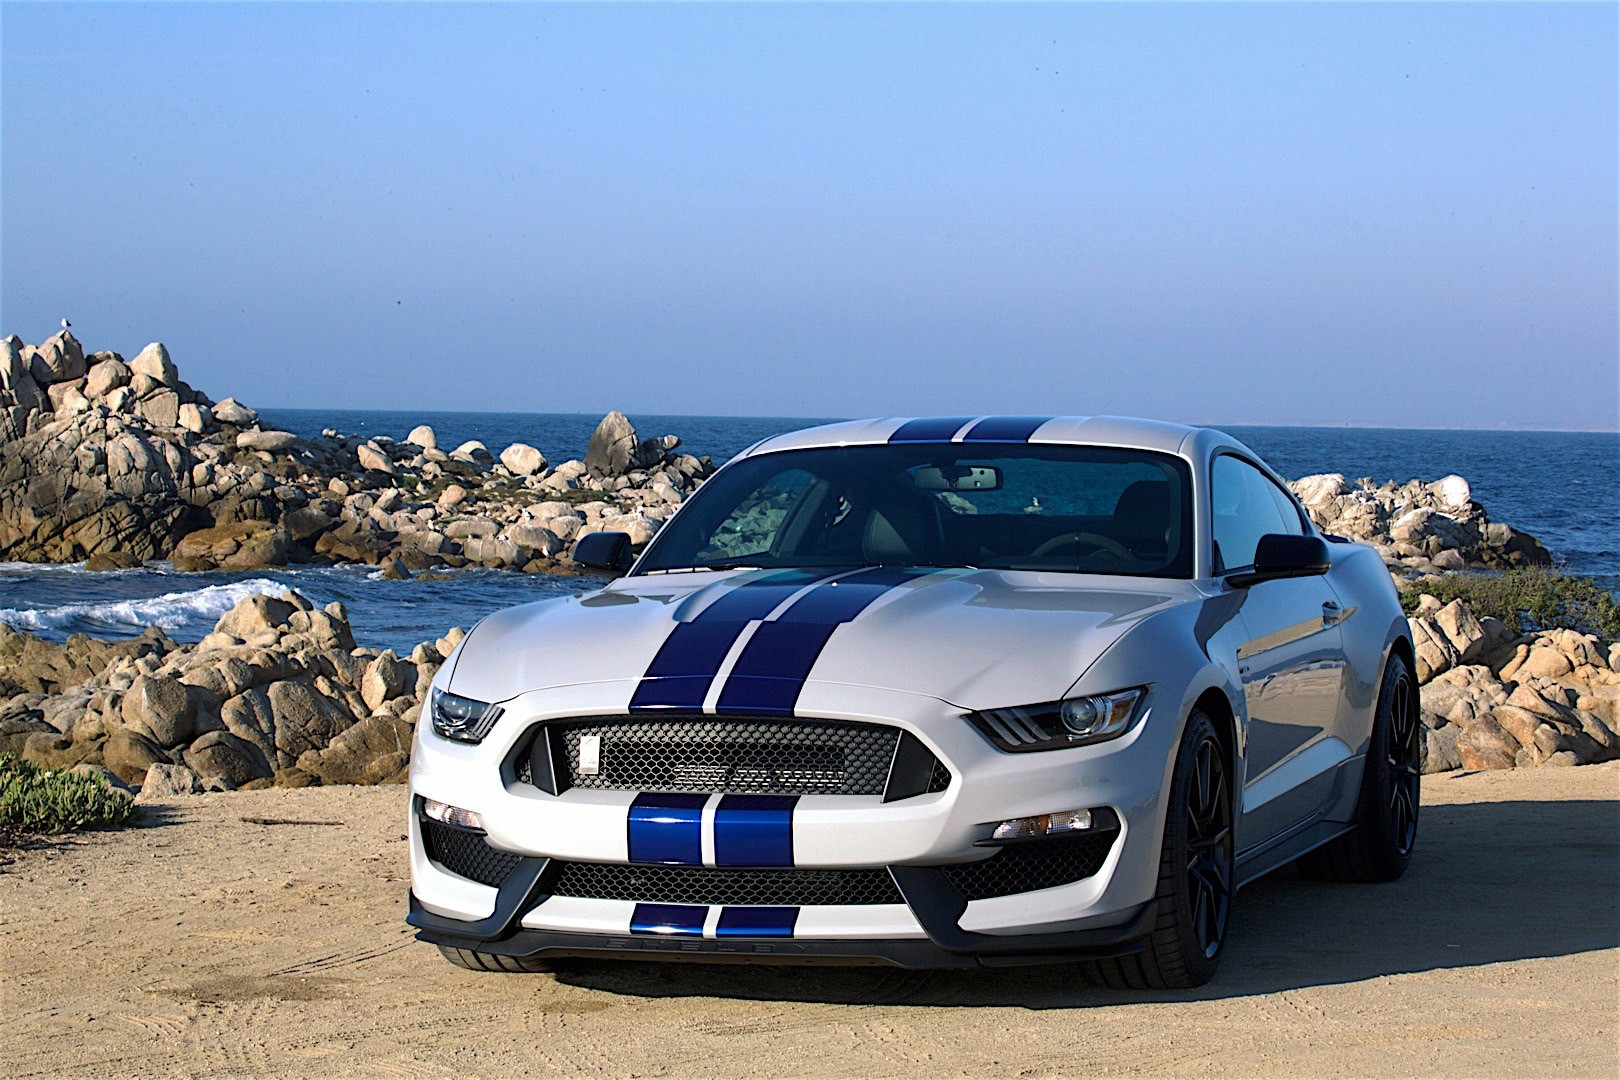 2017 Ford Mustang Gt350 Shelby >> FORD Mustang Shelby GT350 specs - 2015, 2016, 2017, 2018 - autoevolution